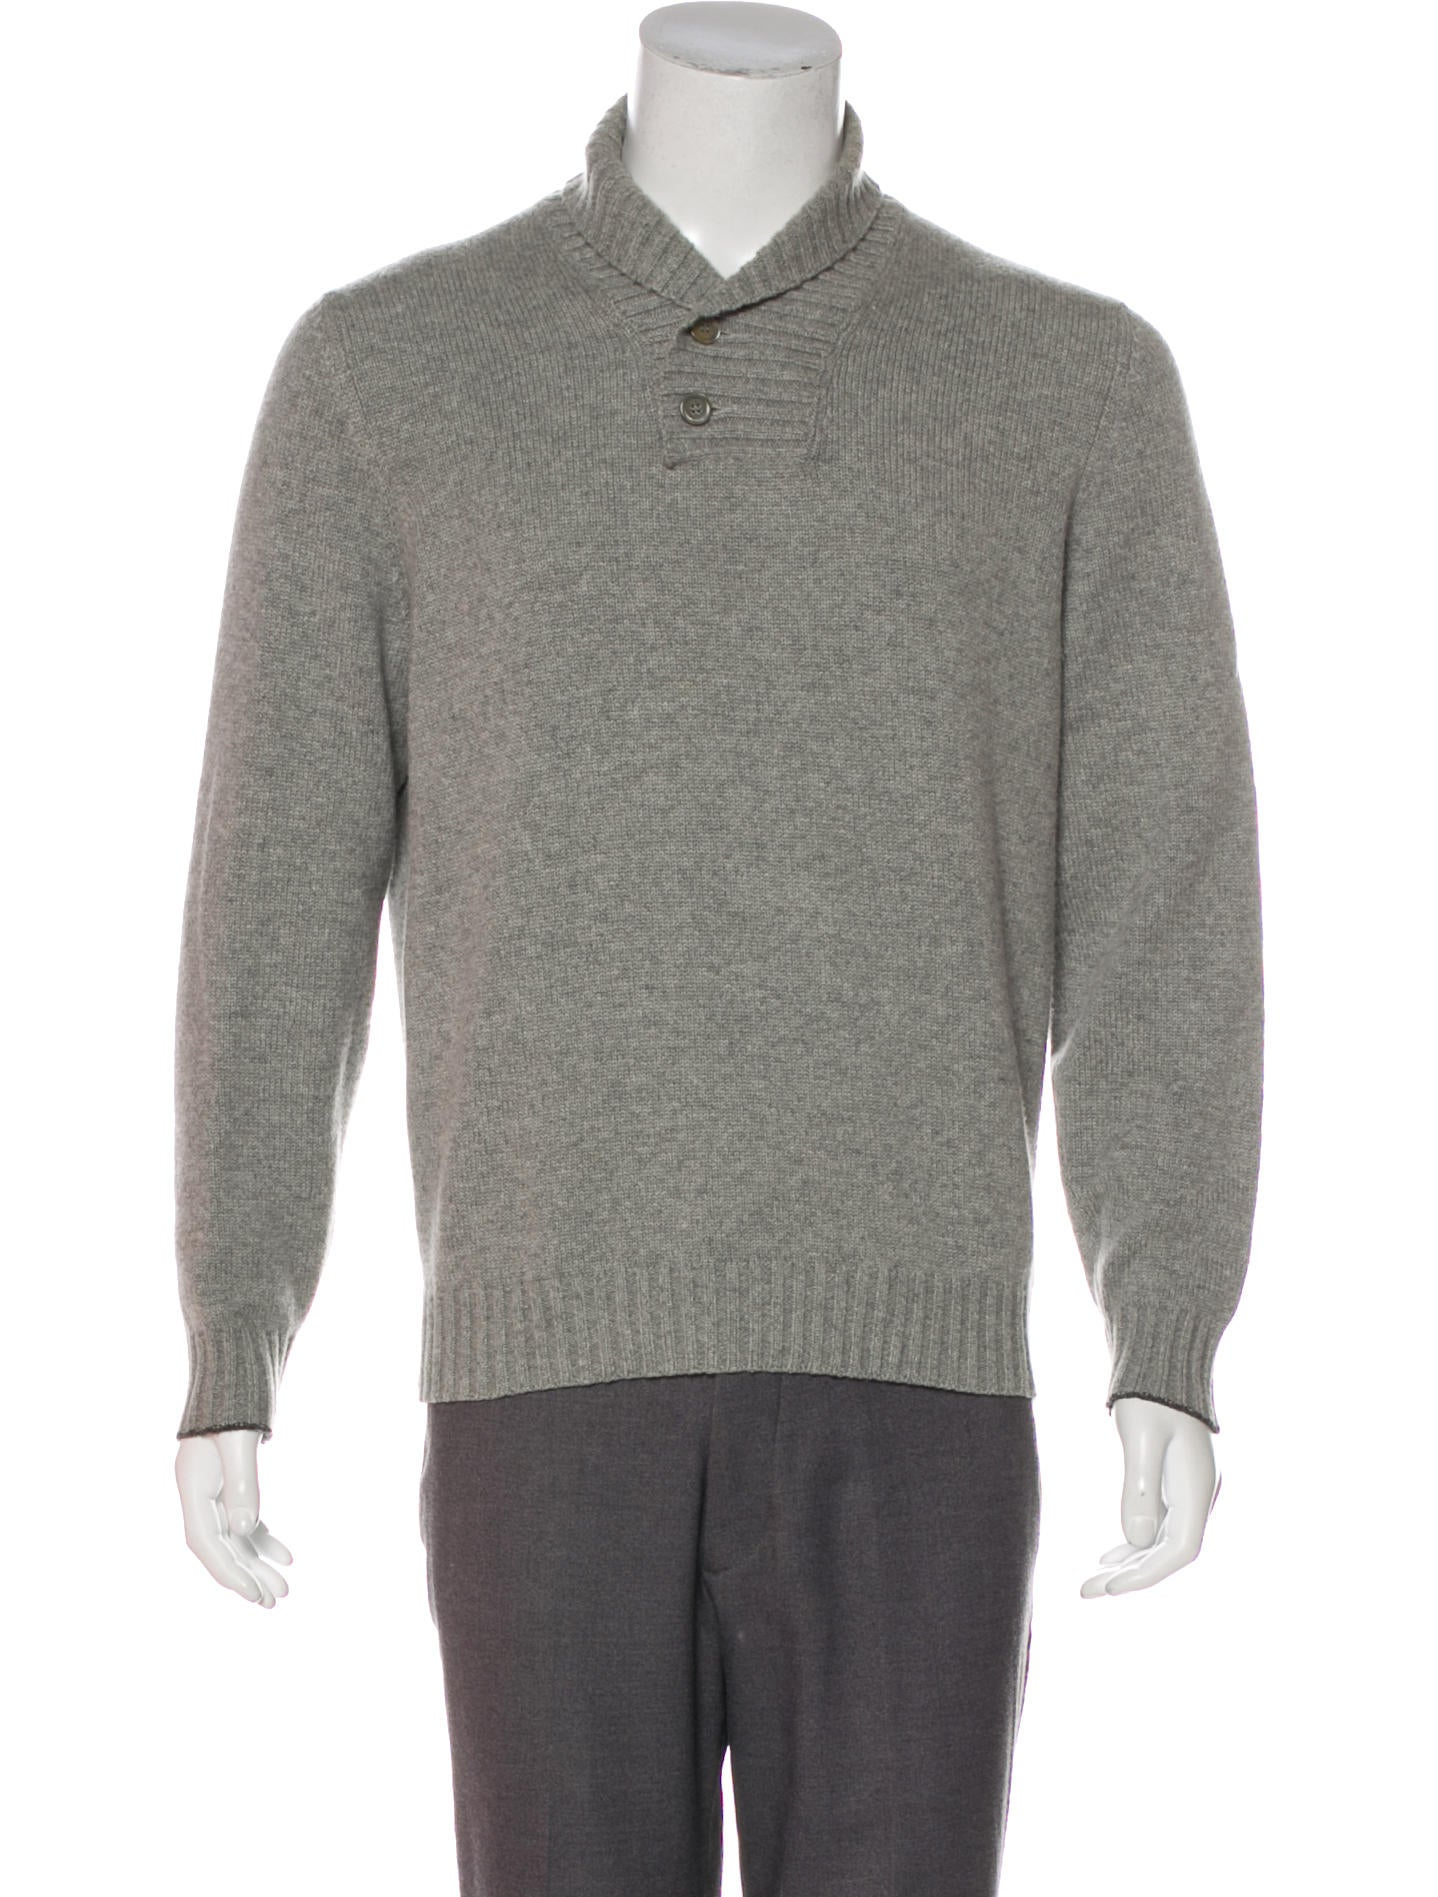 Brunello Cucinelli Cashmere Henley Sweater - Clothing -           BRU103801 | The RealReal